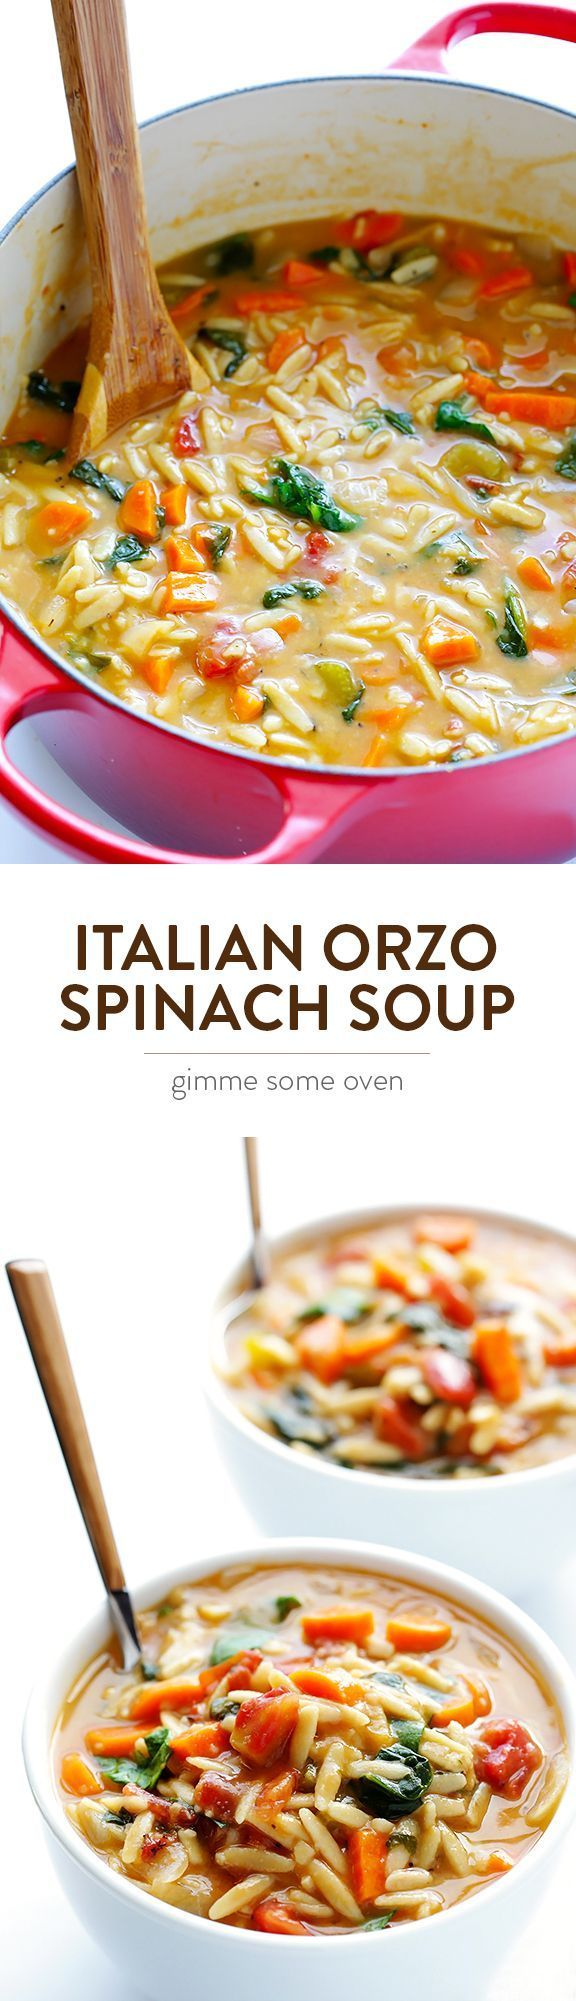 This Italian Orzo Spinach Soup is easy to make in 30 minutes, and it is wonderfully delicious and comforting.   http://gimmesomeoven.com